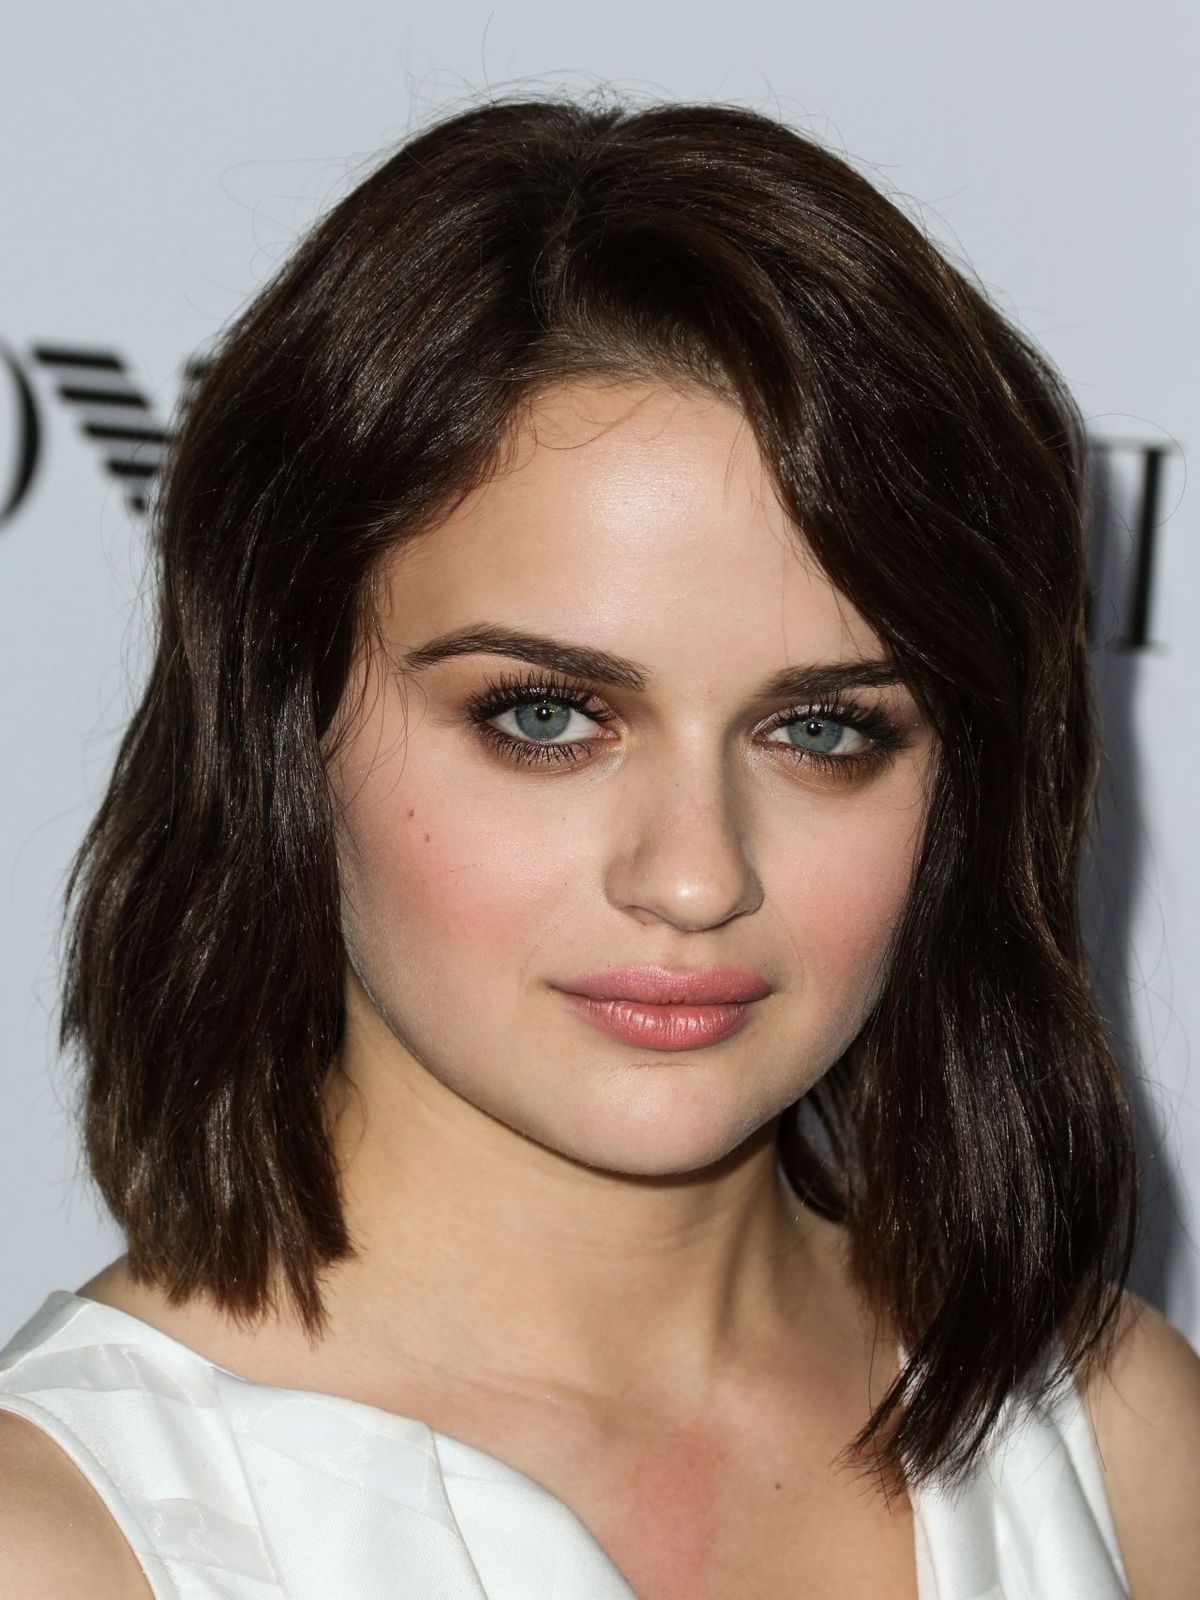 Pin by Celebrity Crushes 💦💦💦 on Joey King ️   Joey king